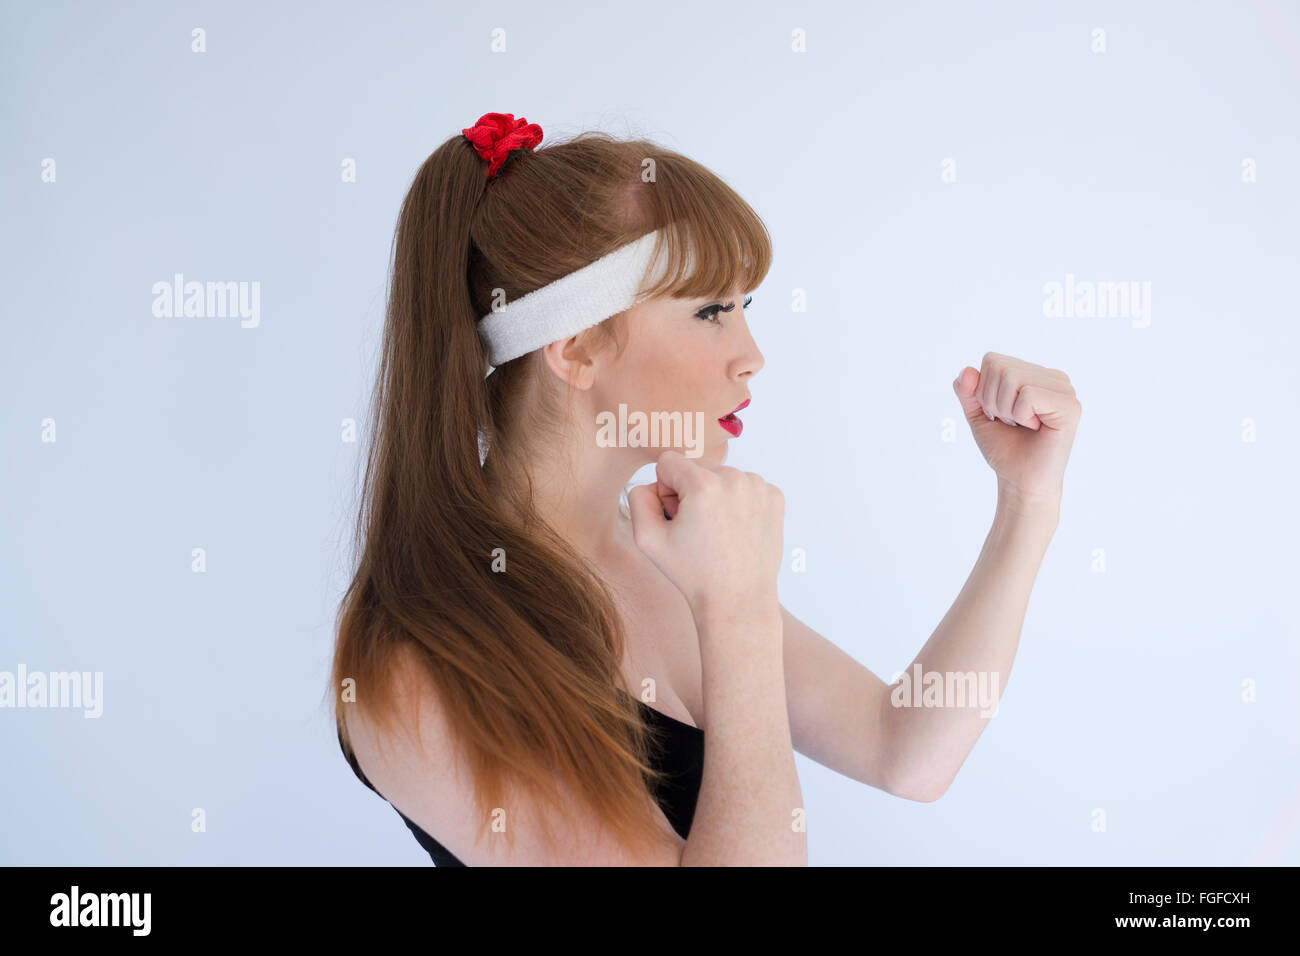 Woman with long brown hair wearing a head sweatband with her fists clenched preparing to engage in boxing - Stock Image